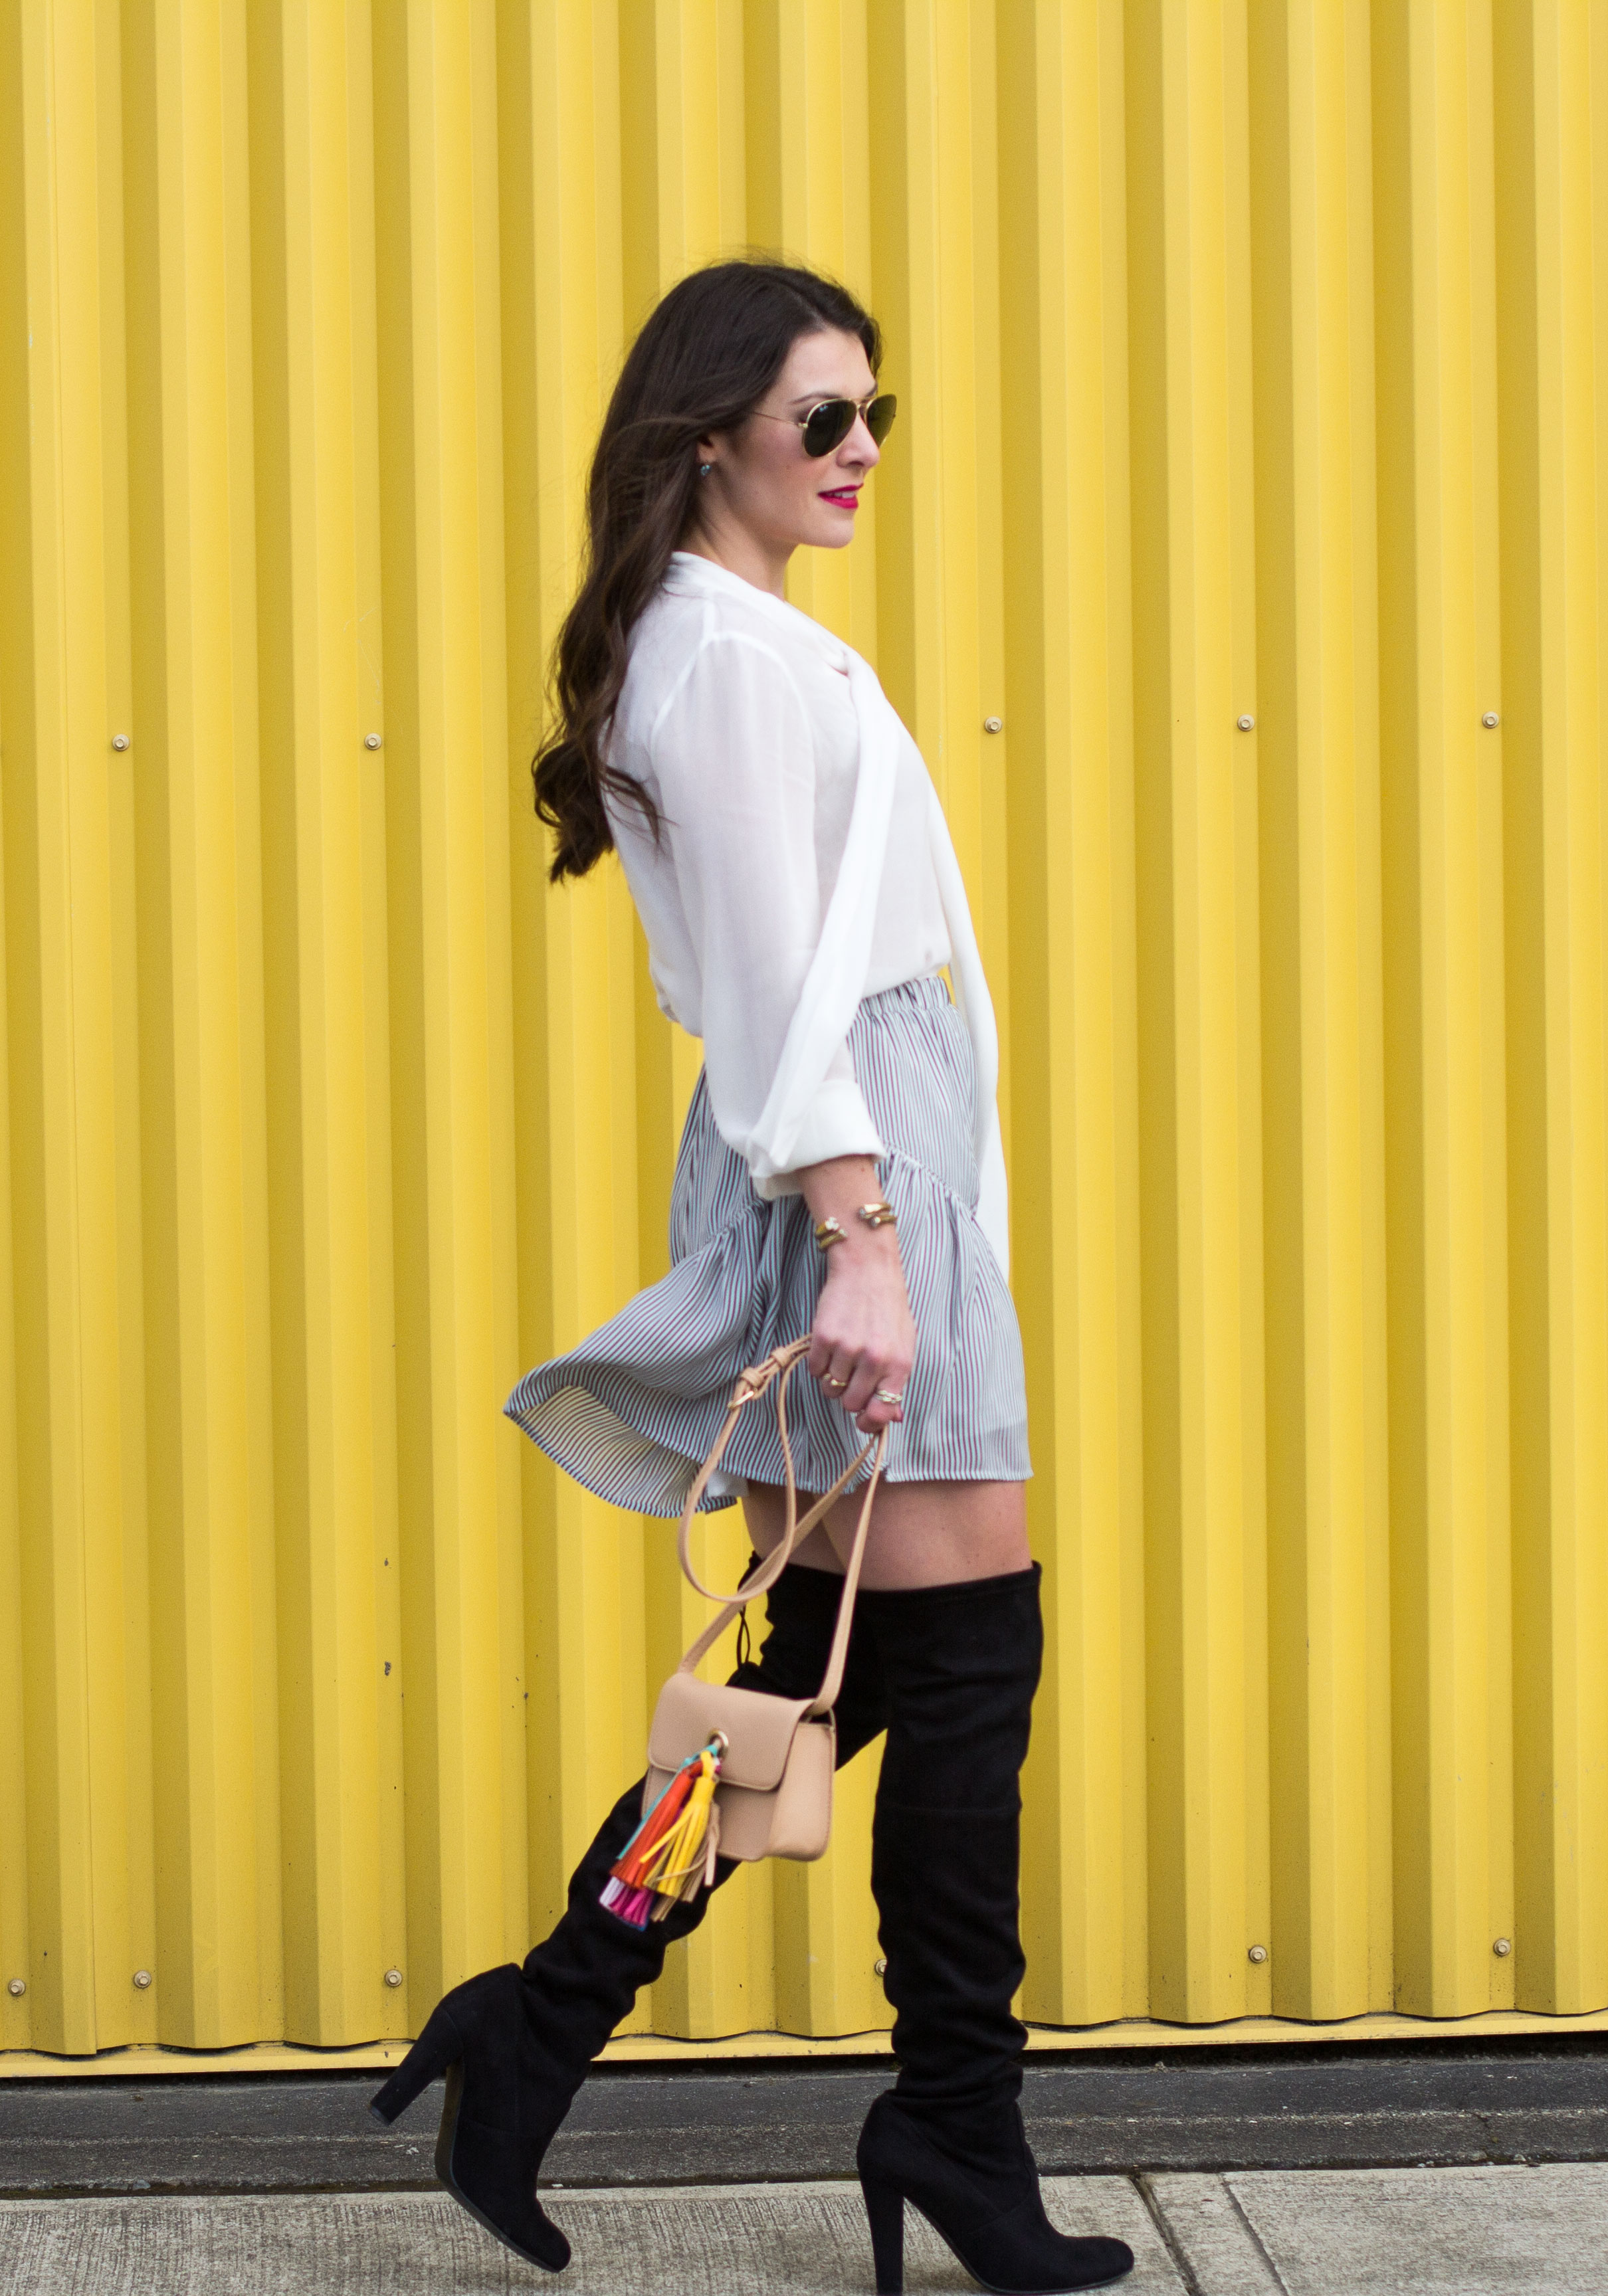 Transition You Wardrobe Into Spring, Steve Madden Gorgeous Boots, Banana Republic Embroidered Trim Mini Skirt, White Bow Blouse, Classic Trench Coat, Rebecca Minkoff Tassel Bag DIY